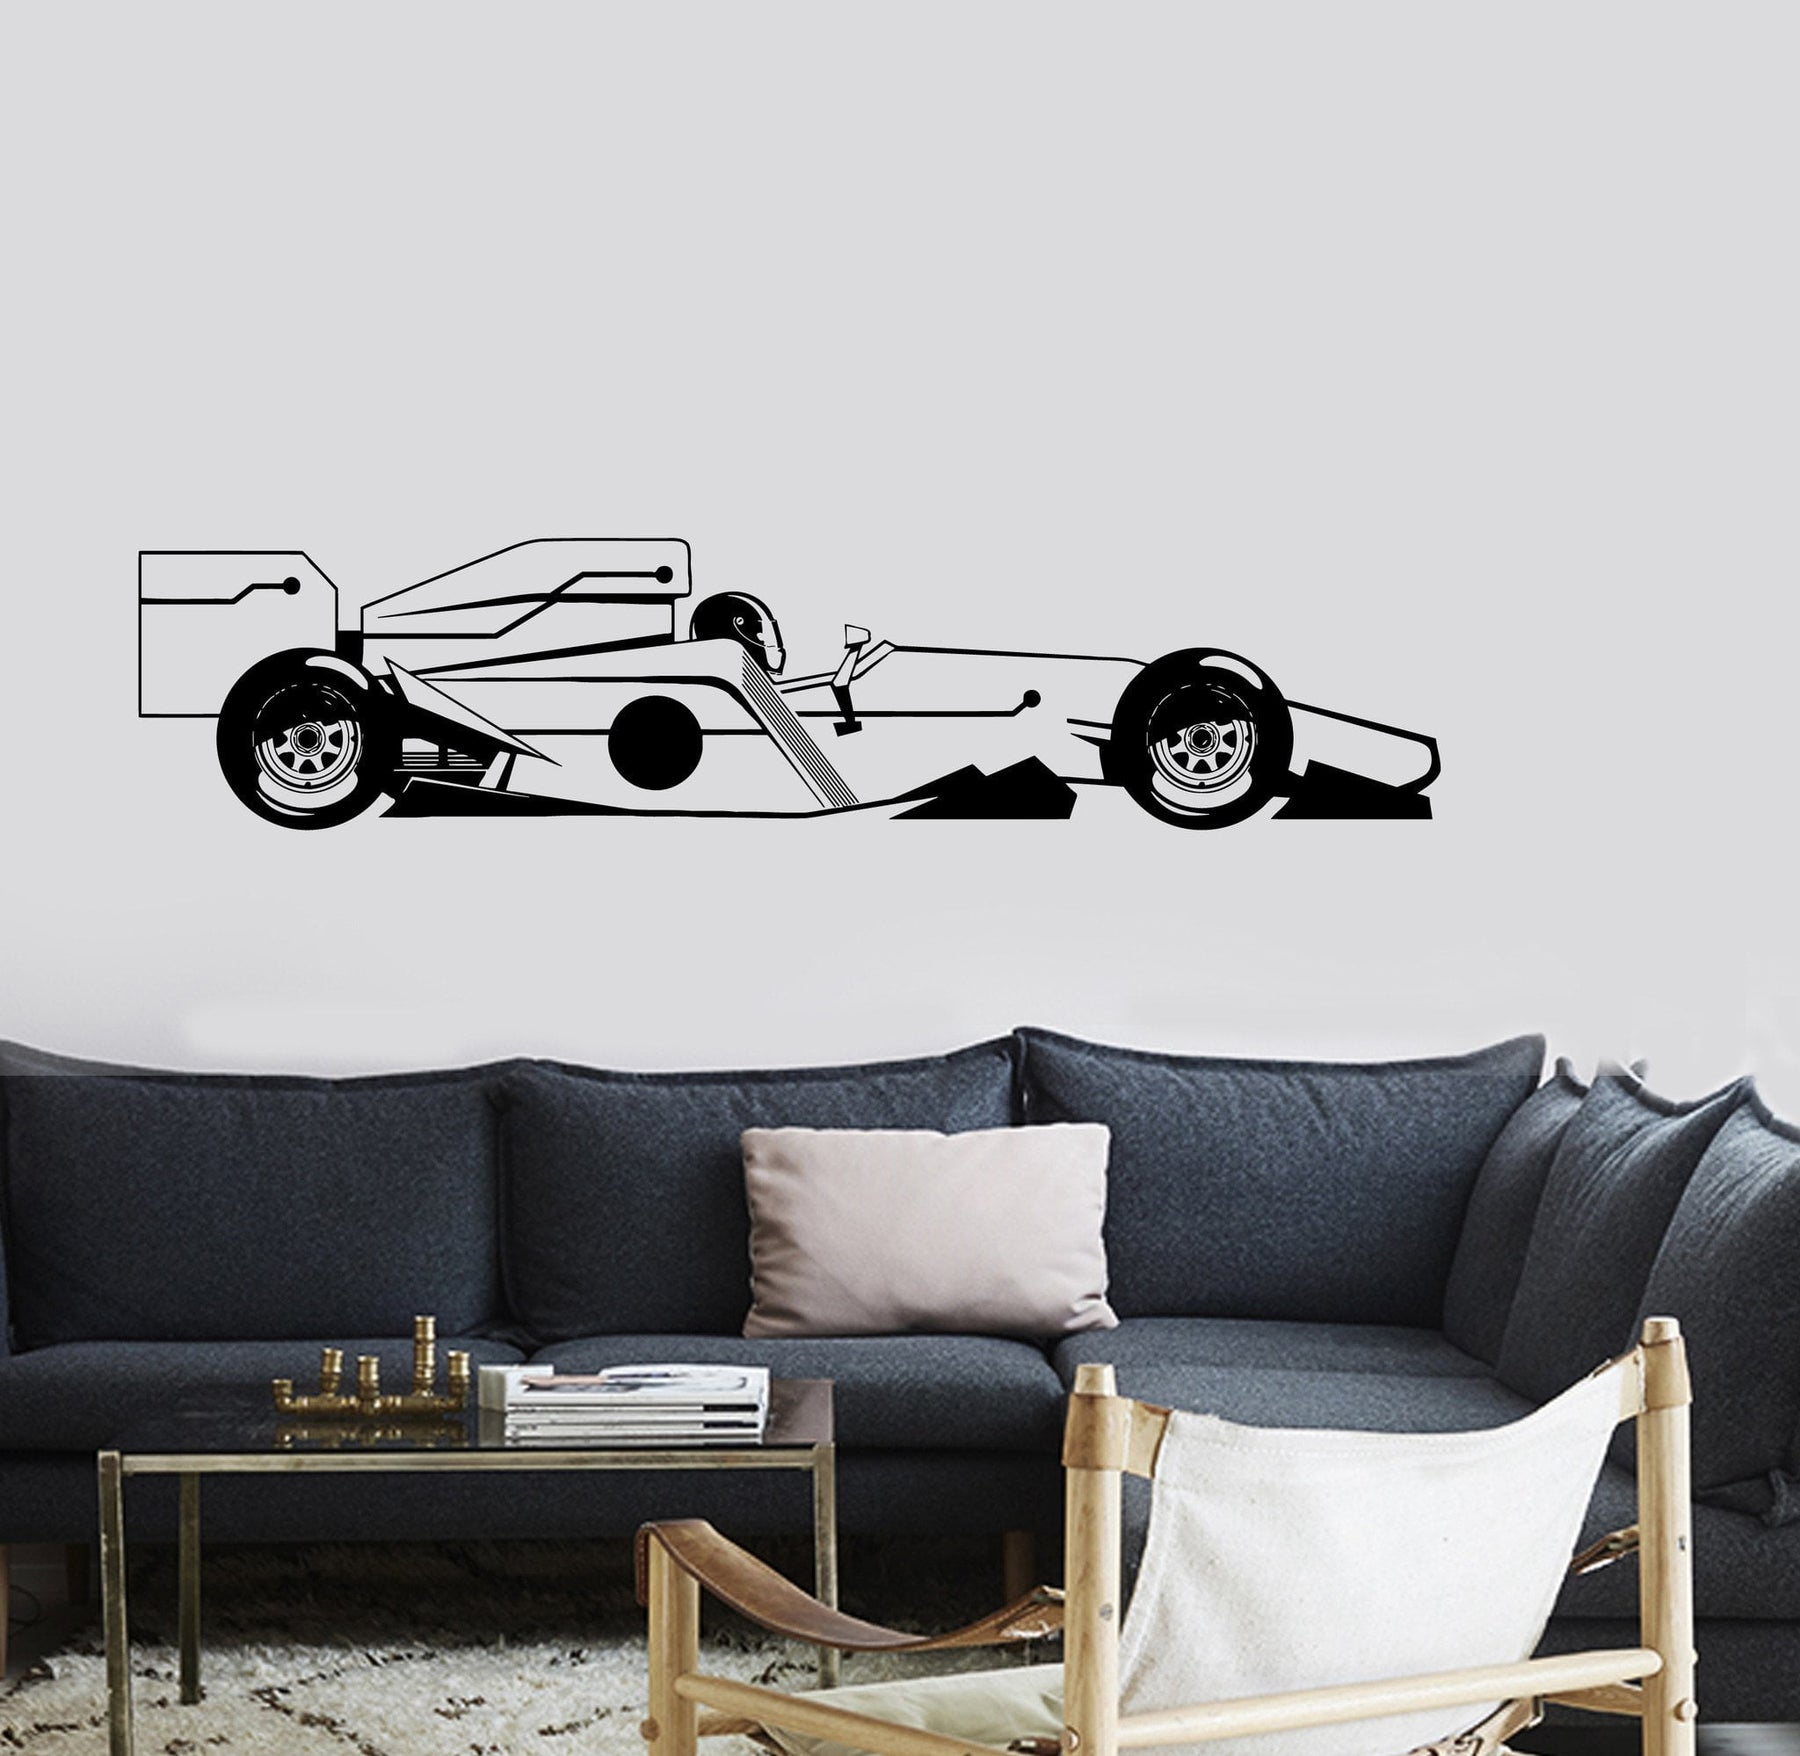 Wall Vinyl Decal Carting Formula 1 Race Racing Car Decor Unique Gift z3735